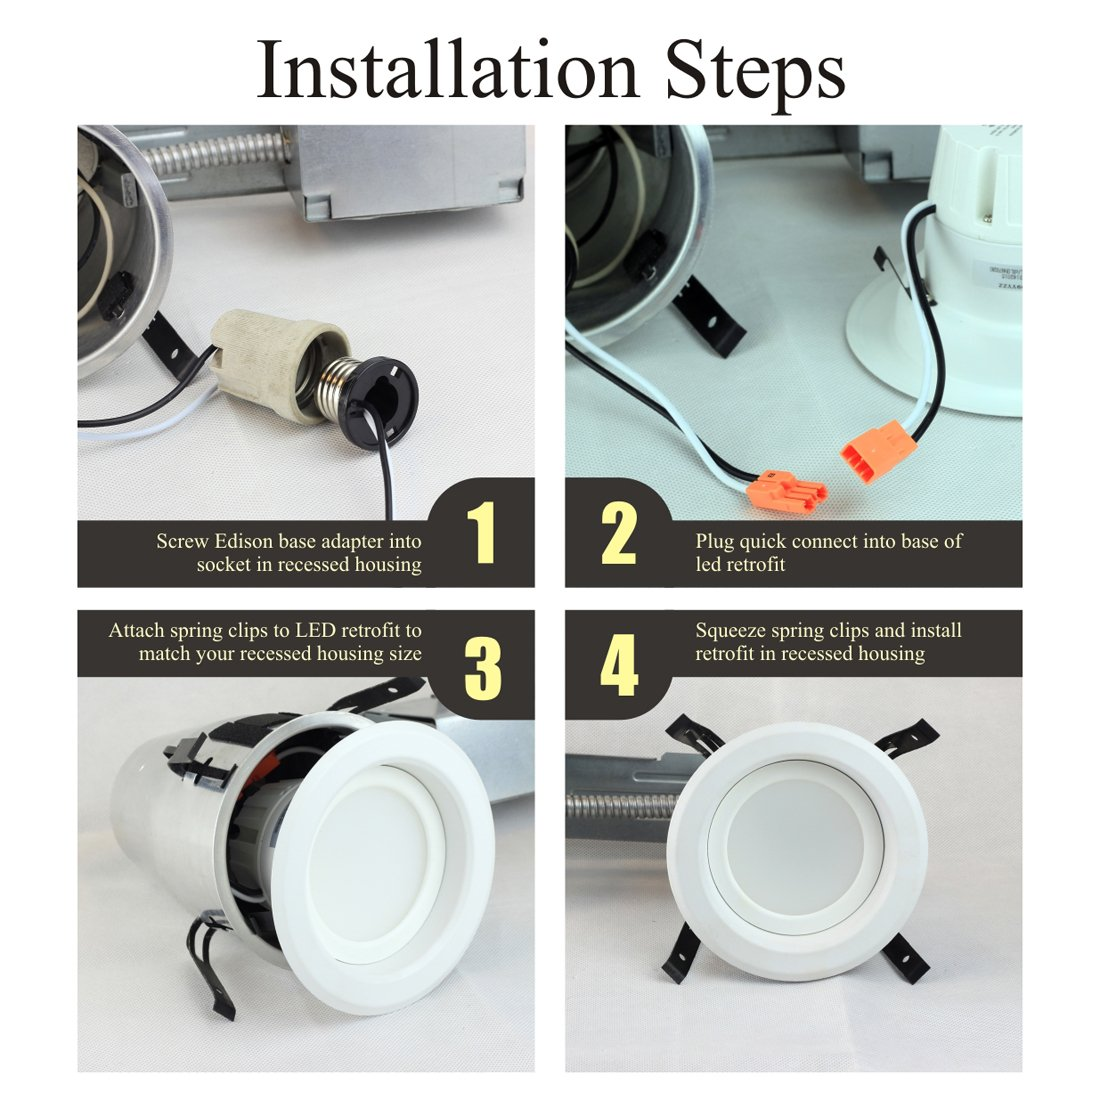 Shine HAI 4 inch Dimmable LED Downlight, 9W (65W Replacement), 5000K Daylight White, 850 Lumens, Retrofit LED Recessed Lighting Fixture, LED Ceiling Light, Recessed Downlight, 12-Pack by SHINE HAI (Image #8)